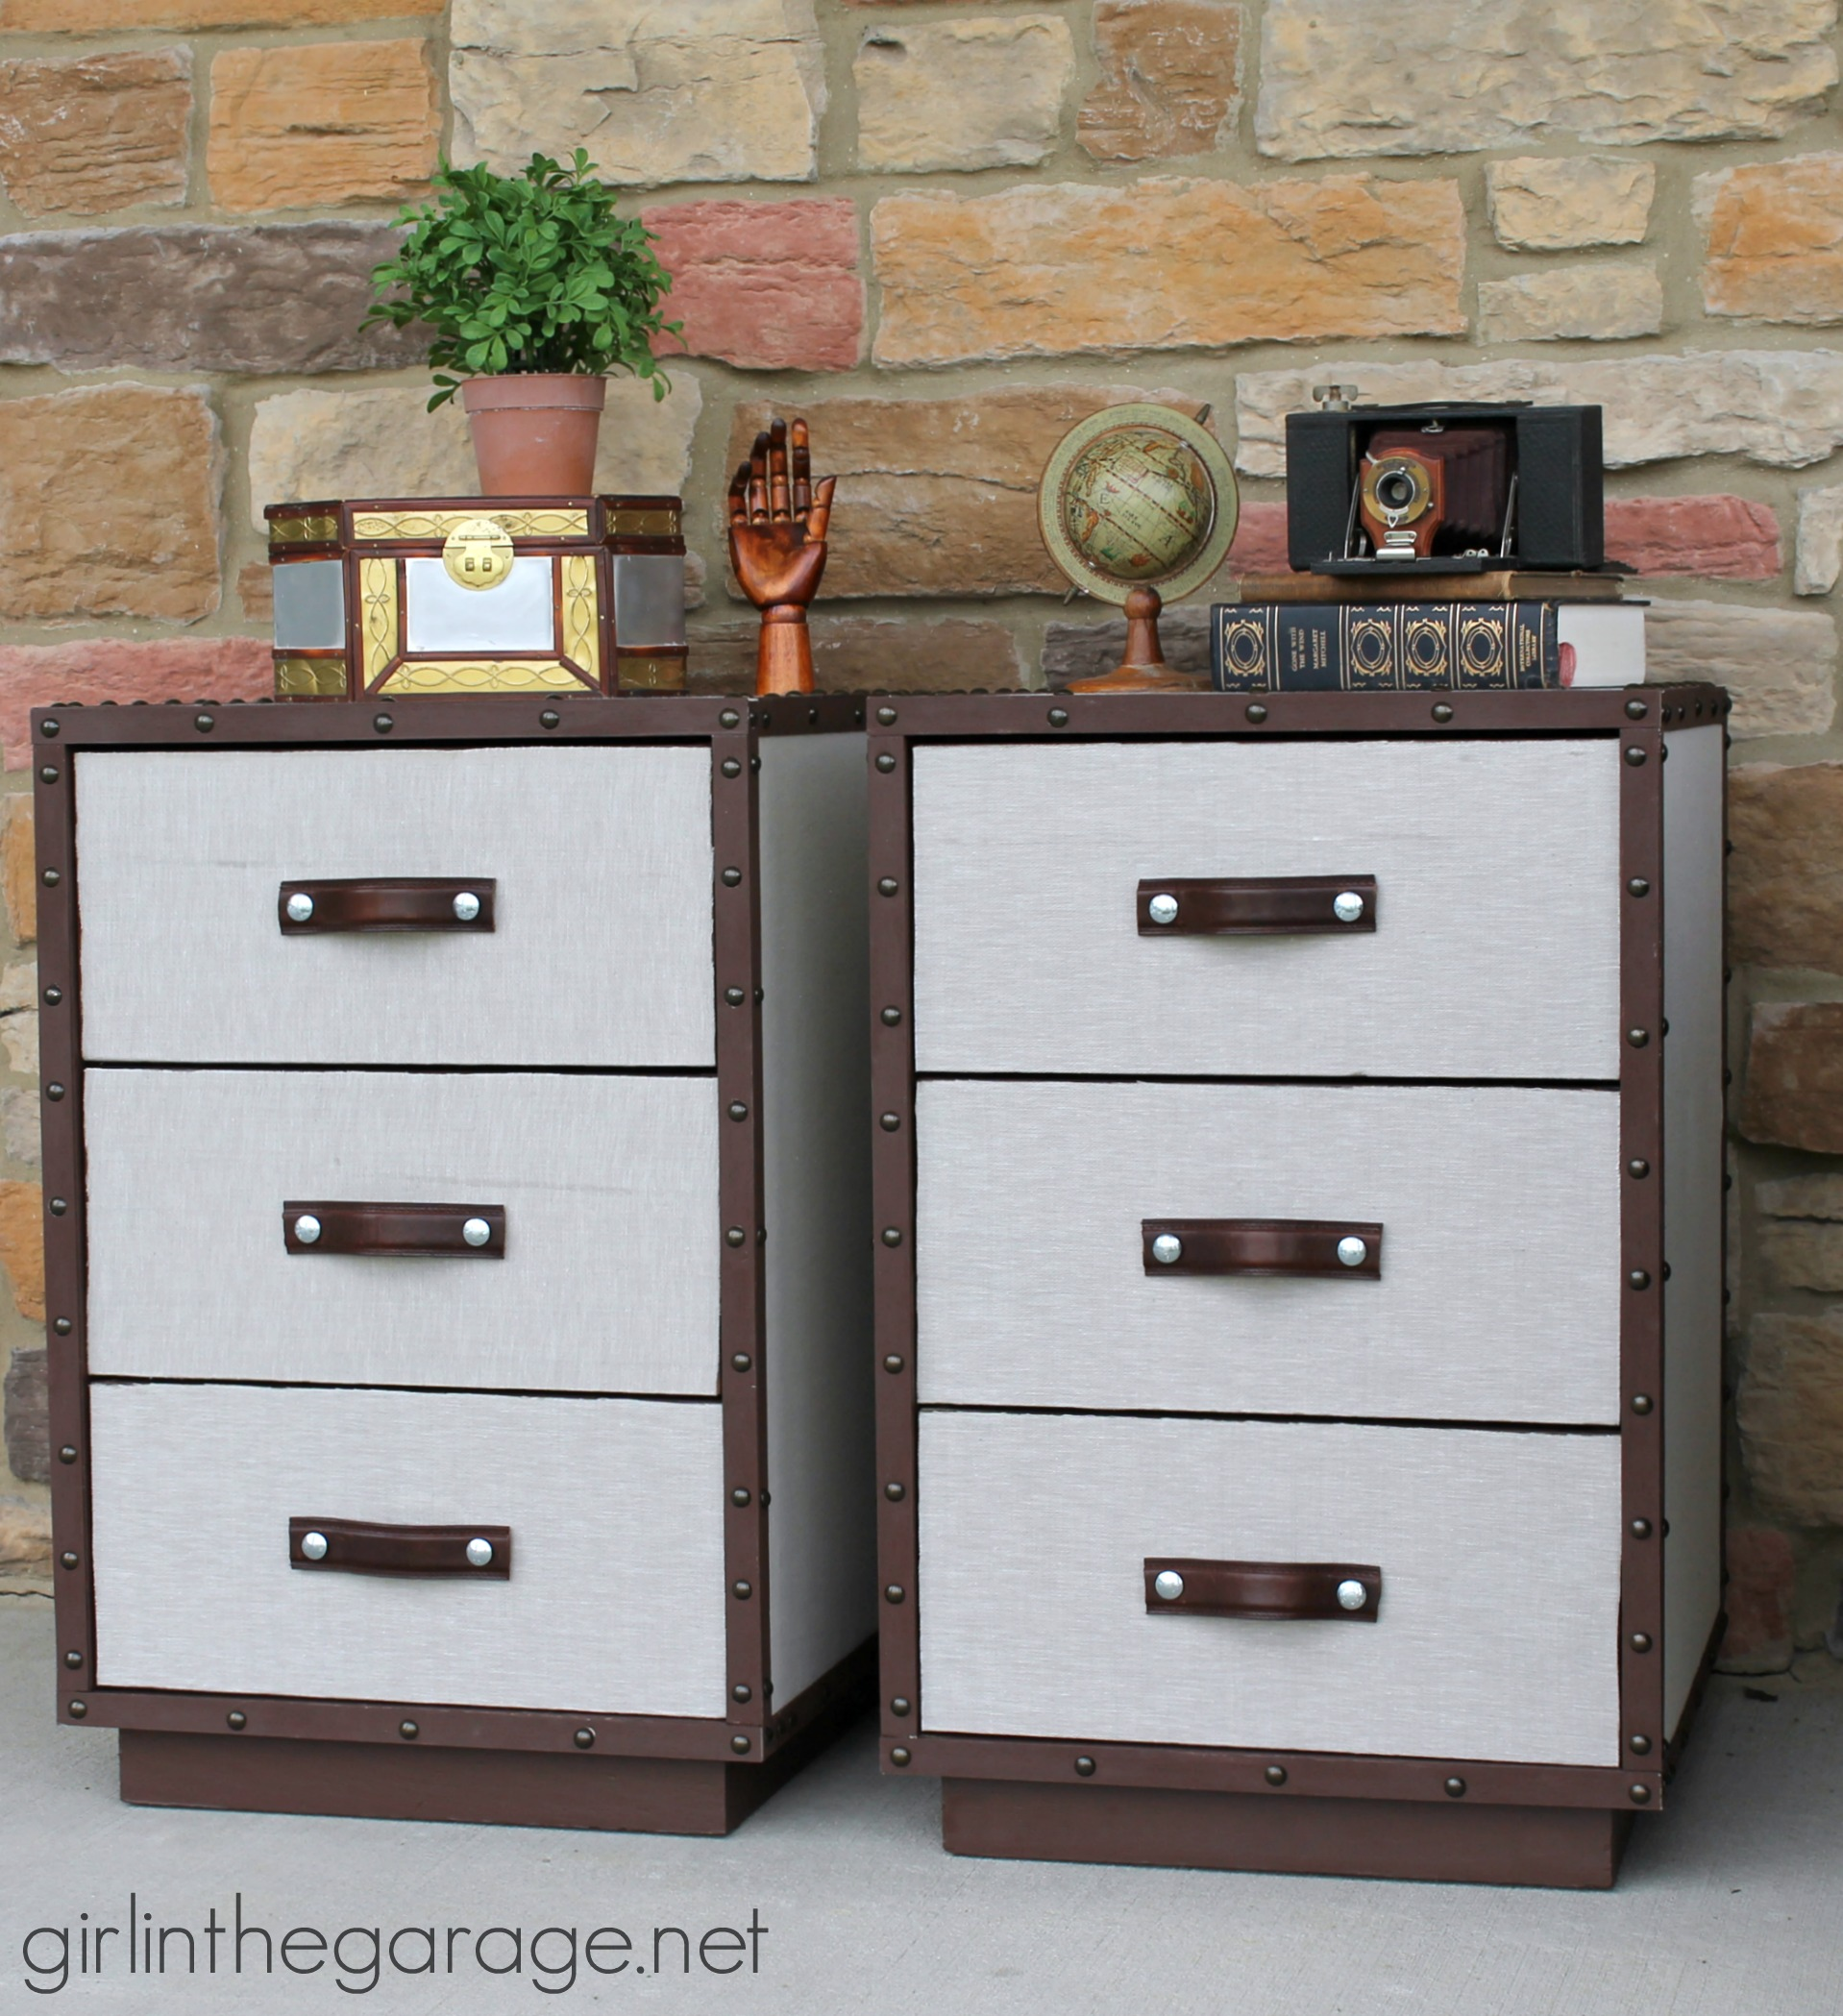 storage pulls sideboard off pottery hand second drawer shop barns barn